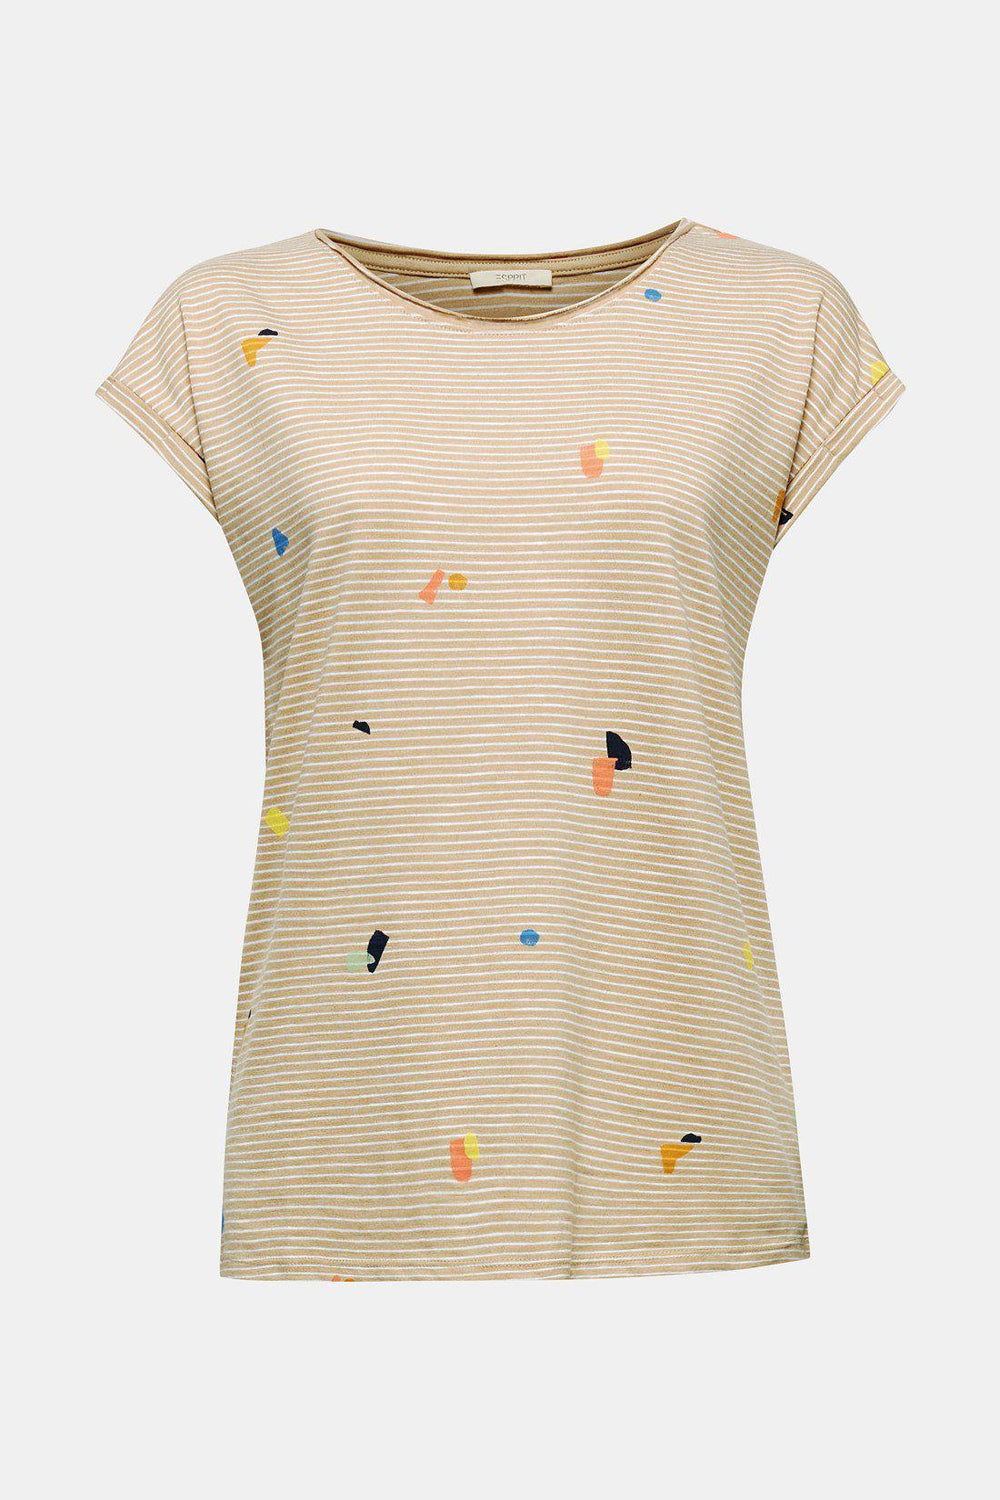 Esprit Stripe Graphic Tee in Beige-The Trendy Walrus